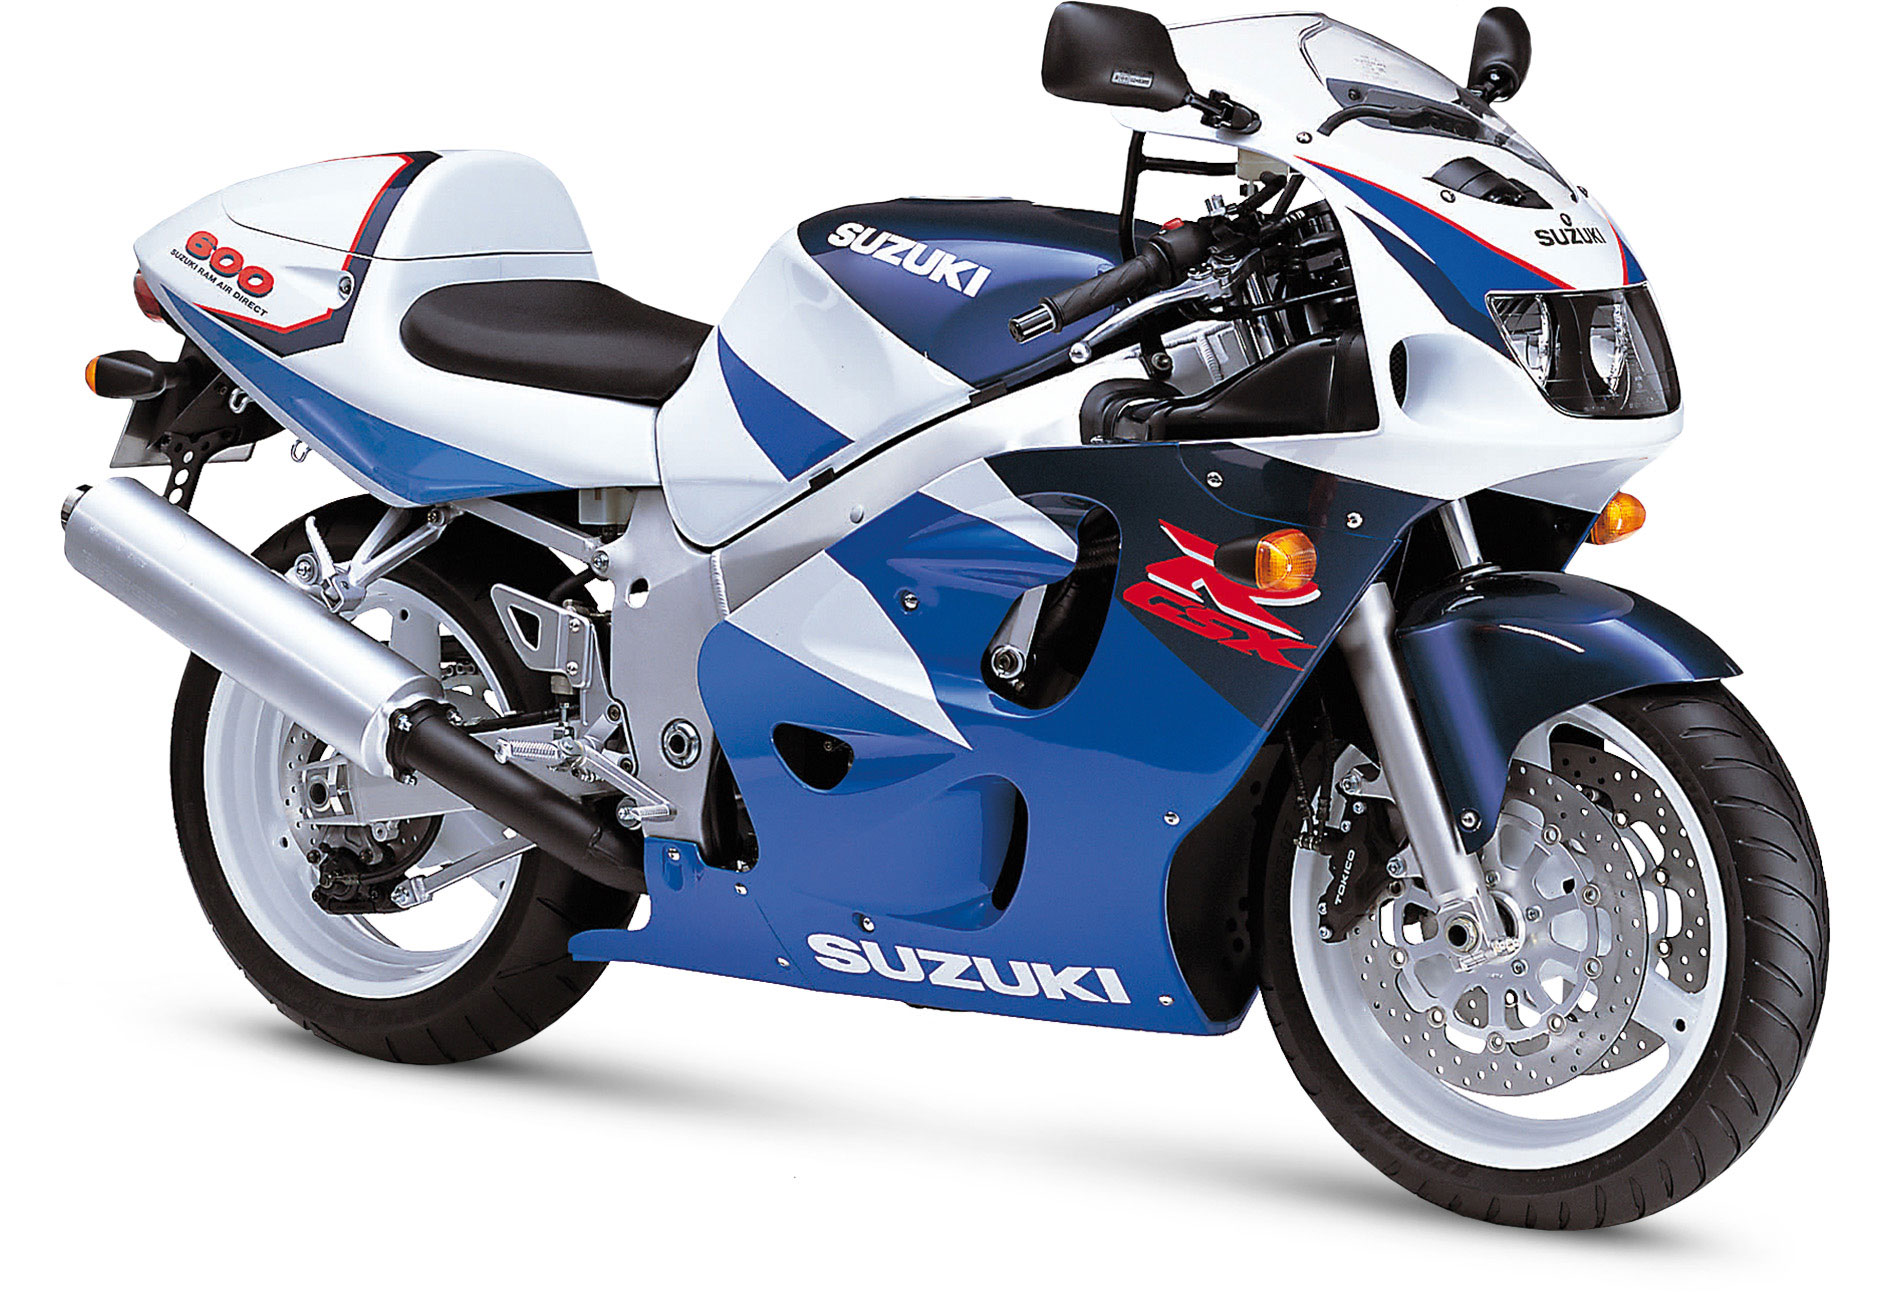 Suzuki Gsx F Parts Diagram